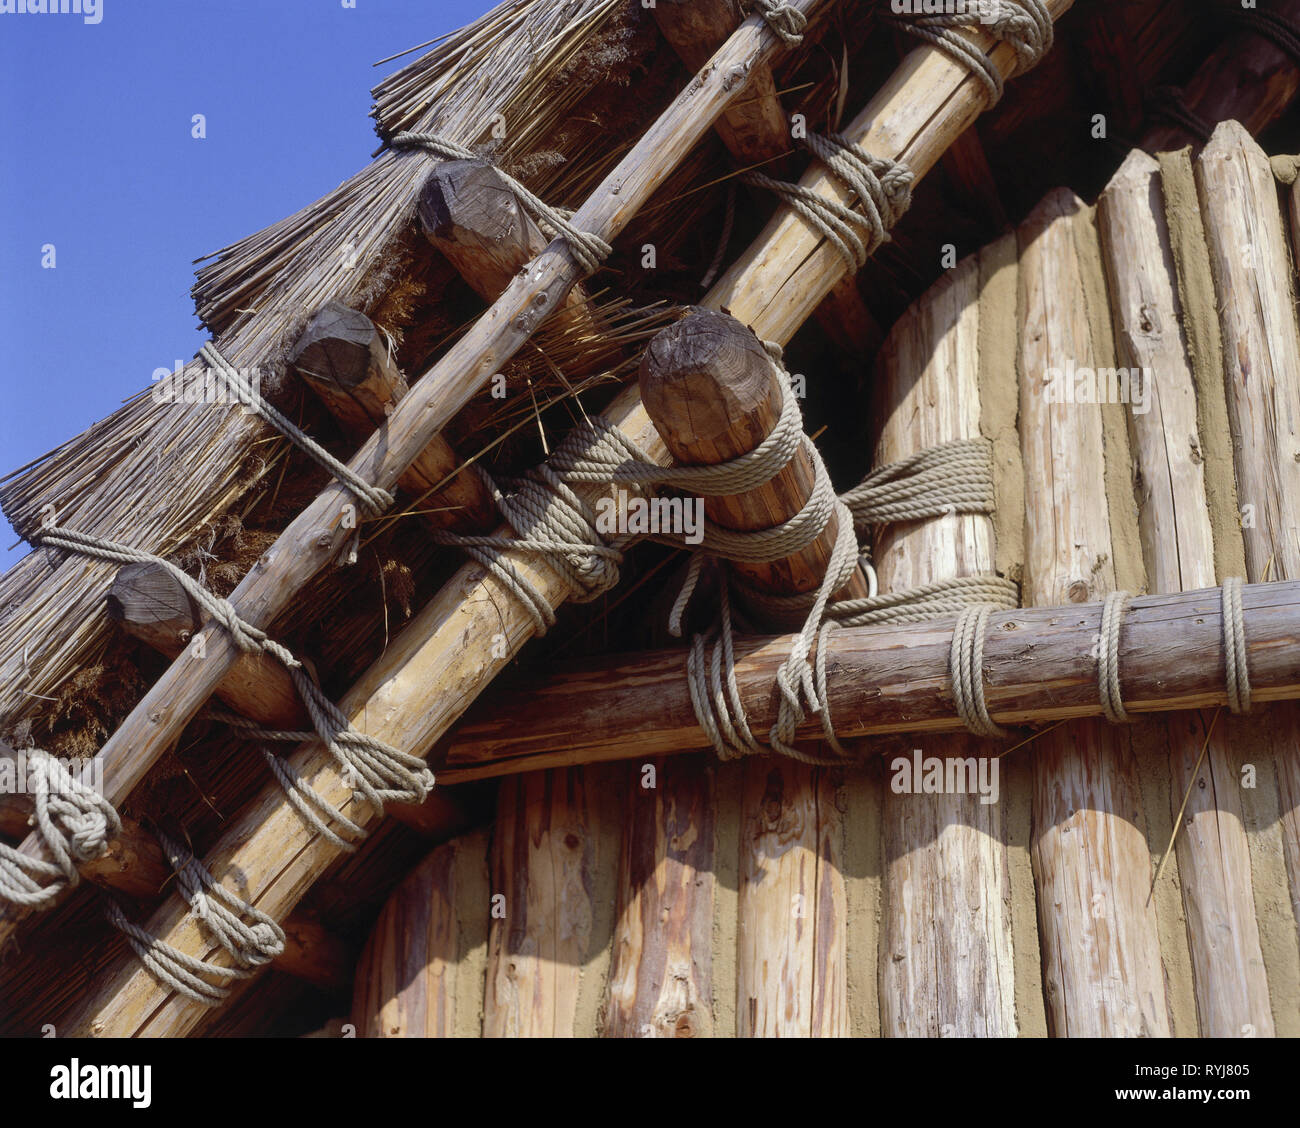 prehistory, architecture, neolithic, reconstruction of a house (5500 BC), detail, gable, oldest houses in Central Europe, Straubing, Lower Bavaria, Additional-Rights-Clearance-Info-Not-Available - Stock Image